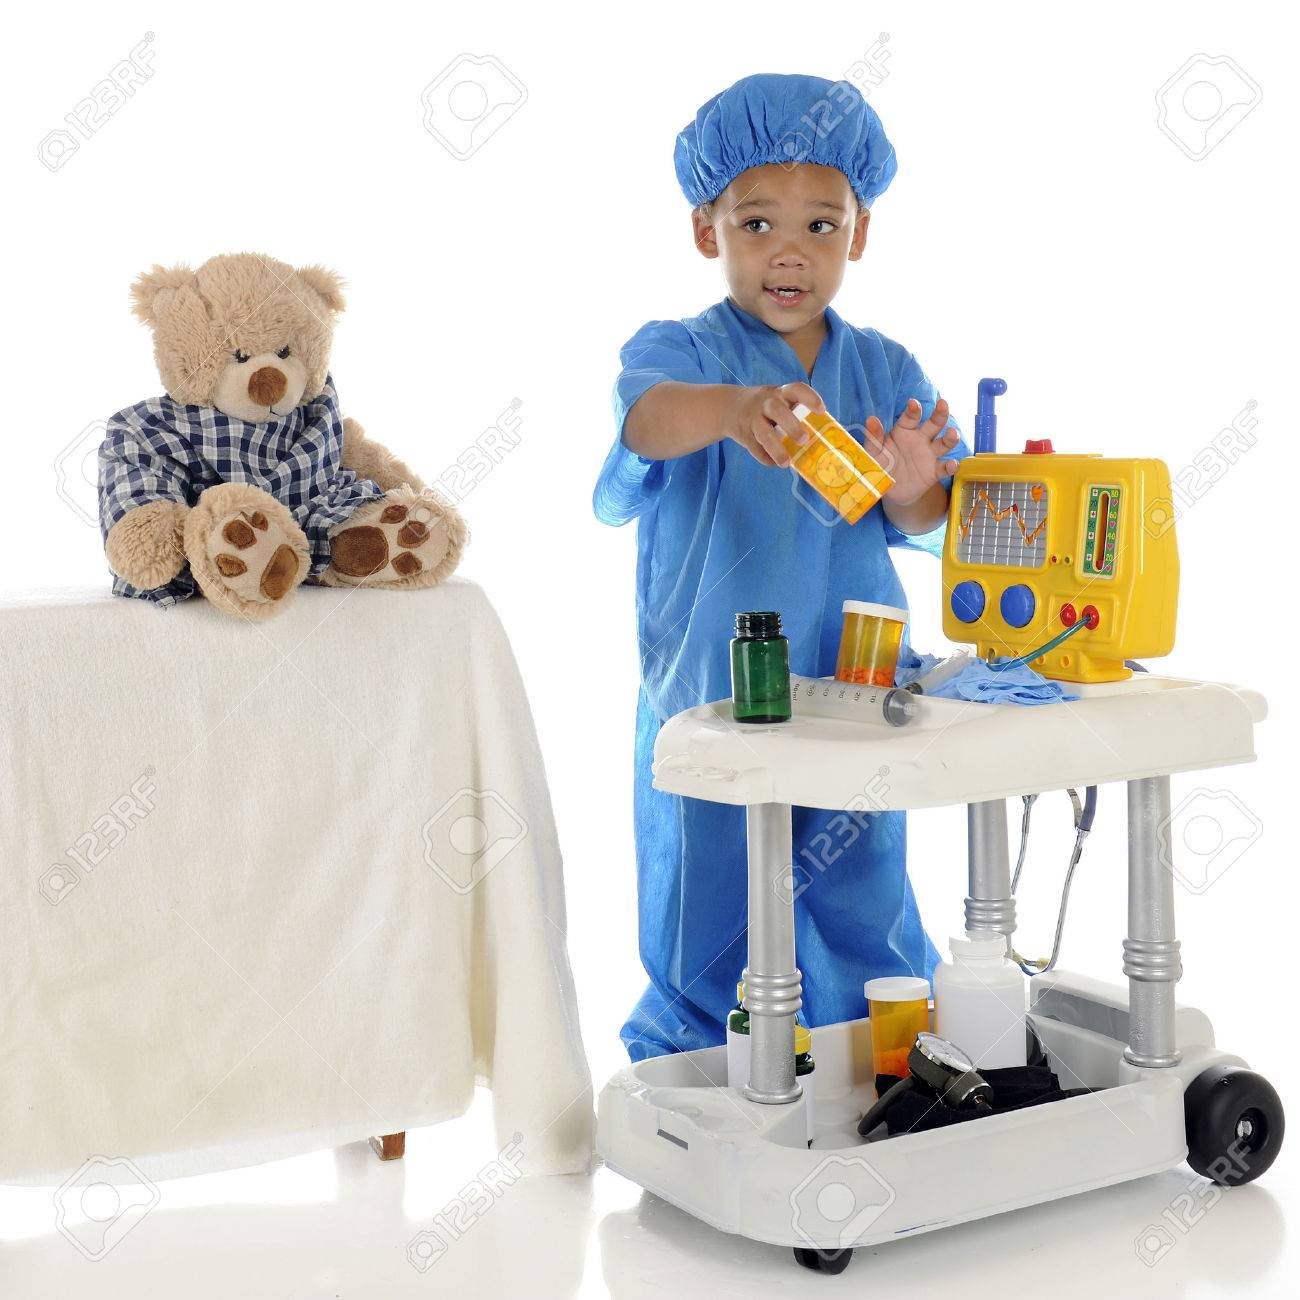 An adorable preschool  doctor  in blue scrubs questioning about the medication he should be giving his patient  toy bear  from his emergency cart   On a white background Stock Photo - 26560455